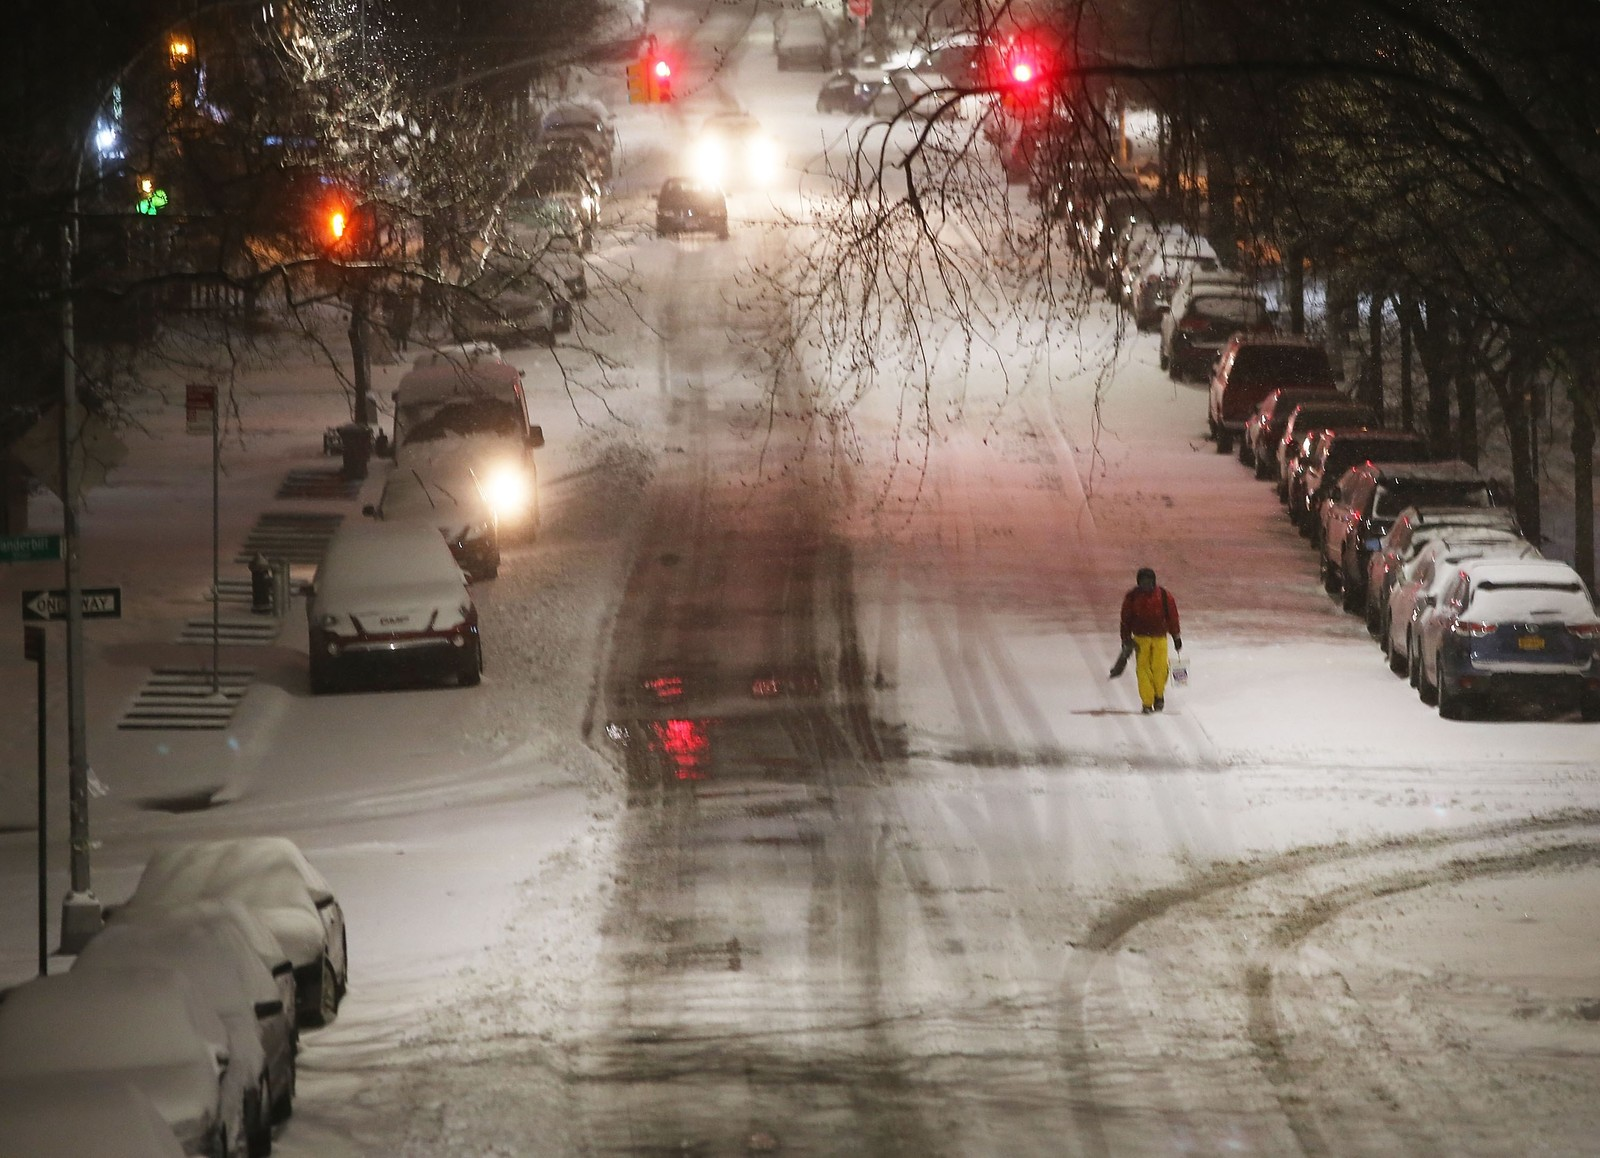 US-MAJOR-BLIZZARD-HAMMERS-EAST-COAST-WITH-HIGH-WINDS-AND-HEAVY-S NEW YORK, NY - MARCH 14: A man walks in the sleet and snow on March 14, 2017 in New York City. New York City and New Jersey are under a state of emergency as a blizzard is expected to bring over one foot of snow and high winds to the area. Schools, flights, businesses and public transportation are closed or restricted throughout the area. Spencer Platt/Getty Images/AFP == FOR NEWSPAPERS, INTERNET, TELCOS & TELEVISION USE ONLY == Major Blizzard Hammers East Coast With High Winds And Heavy Snow